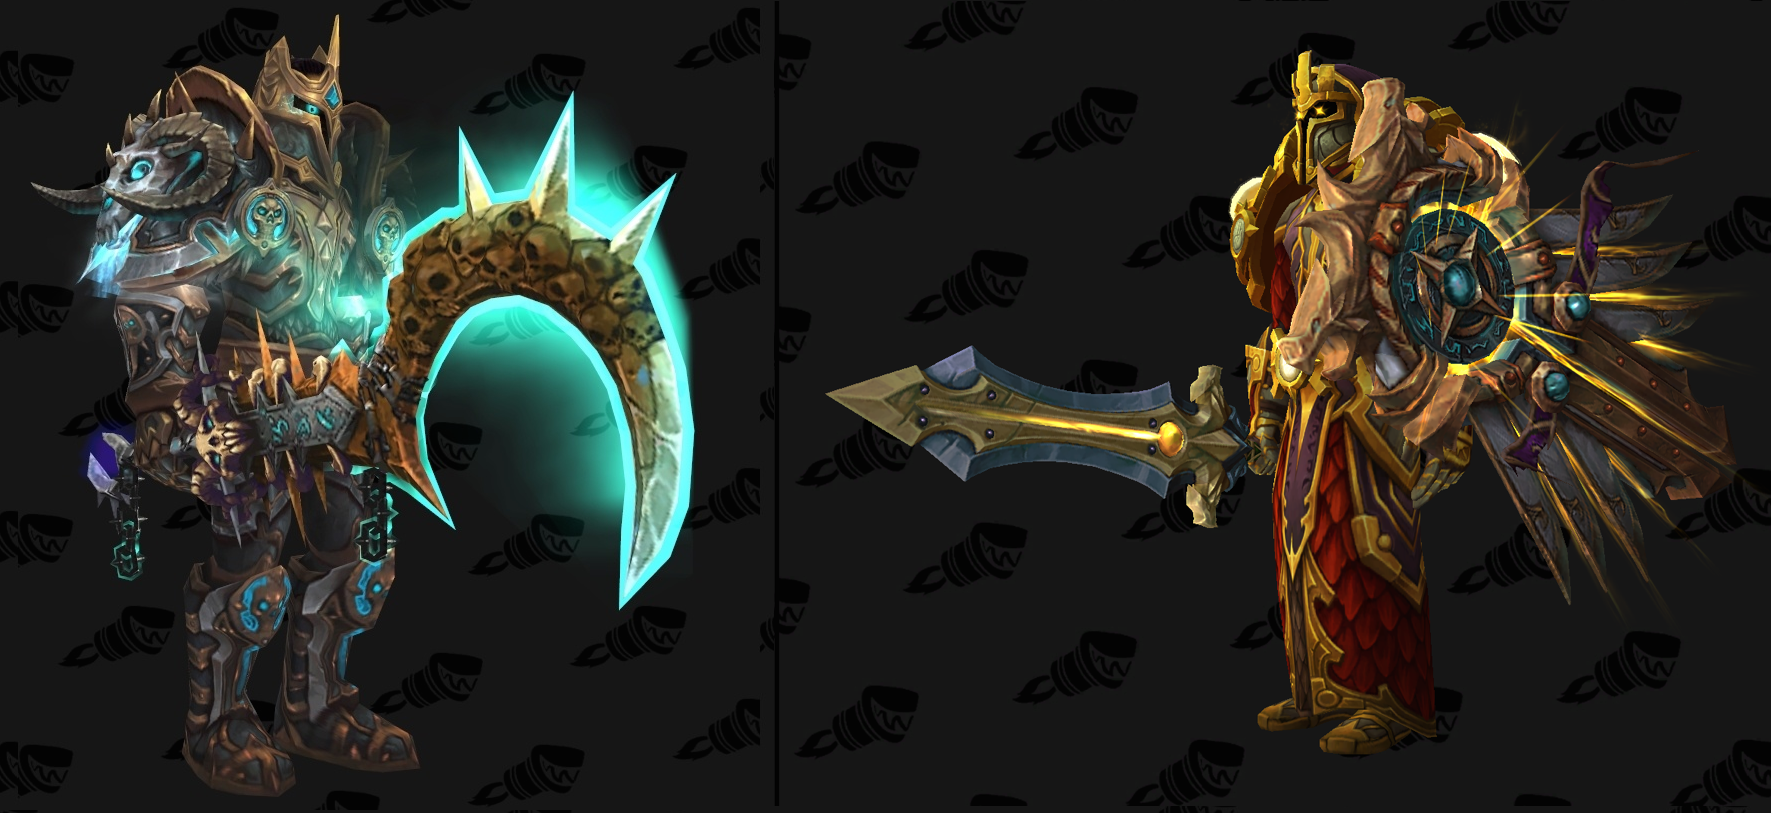 wowhead on twitter which plate tier 19 mythic set do you like more dk or paladin https t. Black Bedroom Furniture Sets. Home Design Ideas